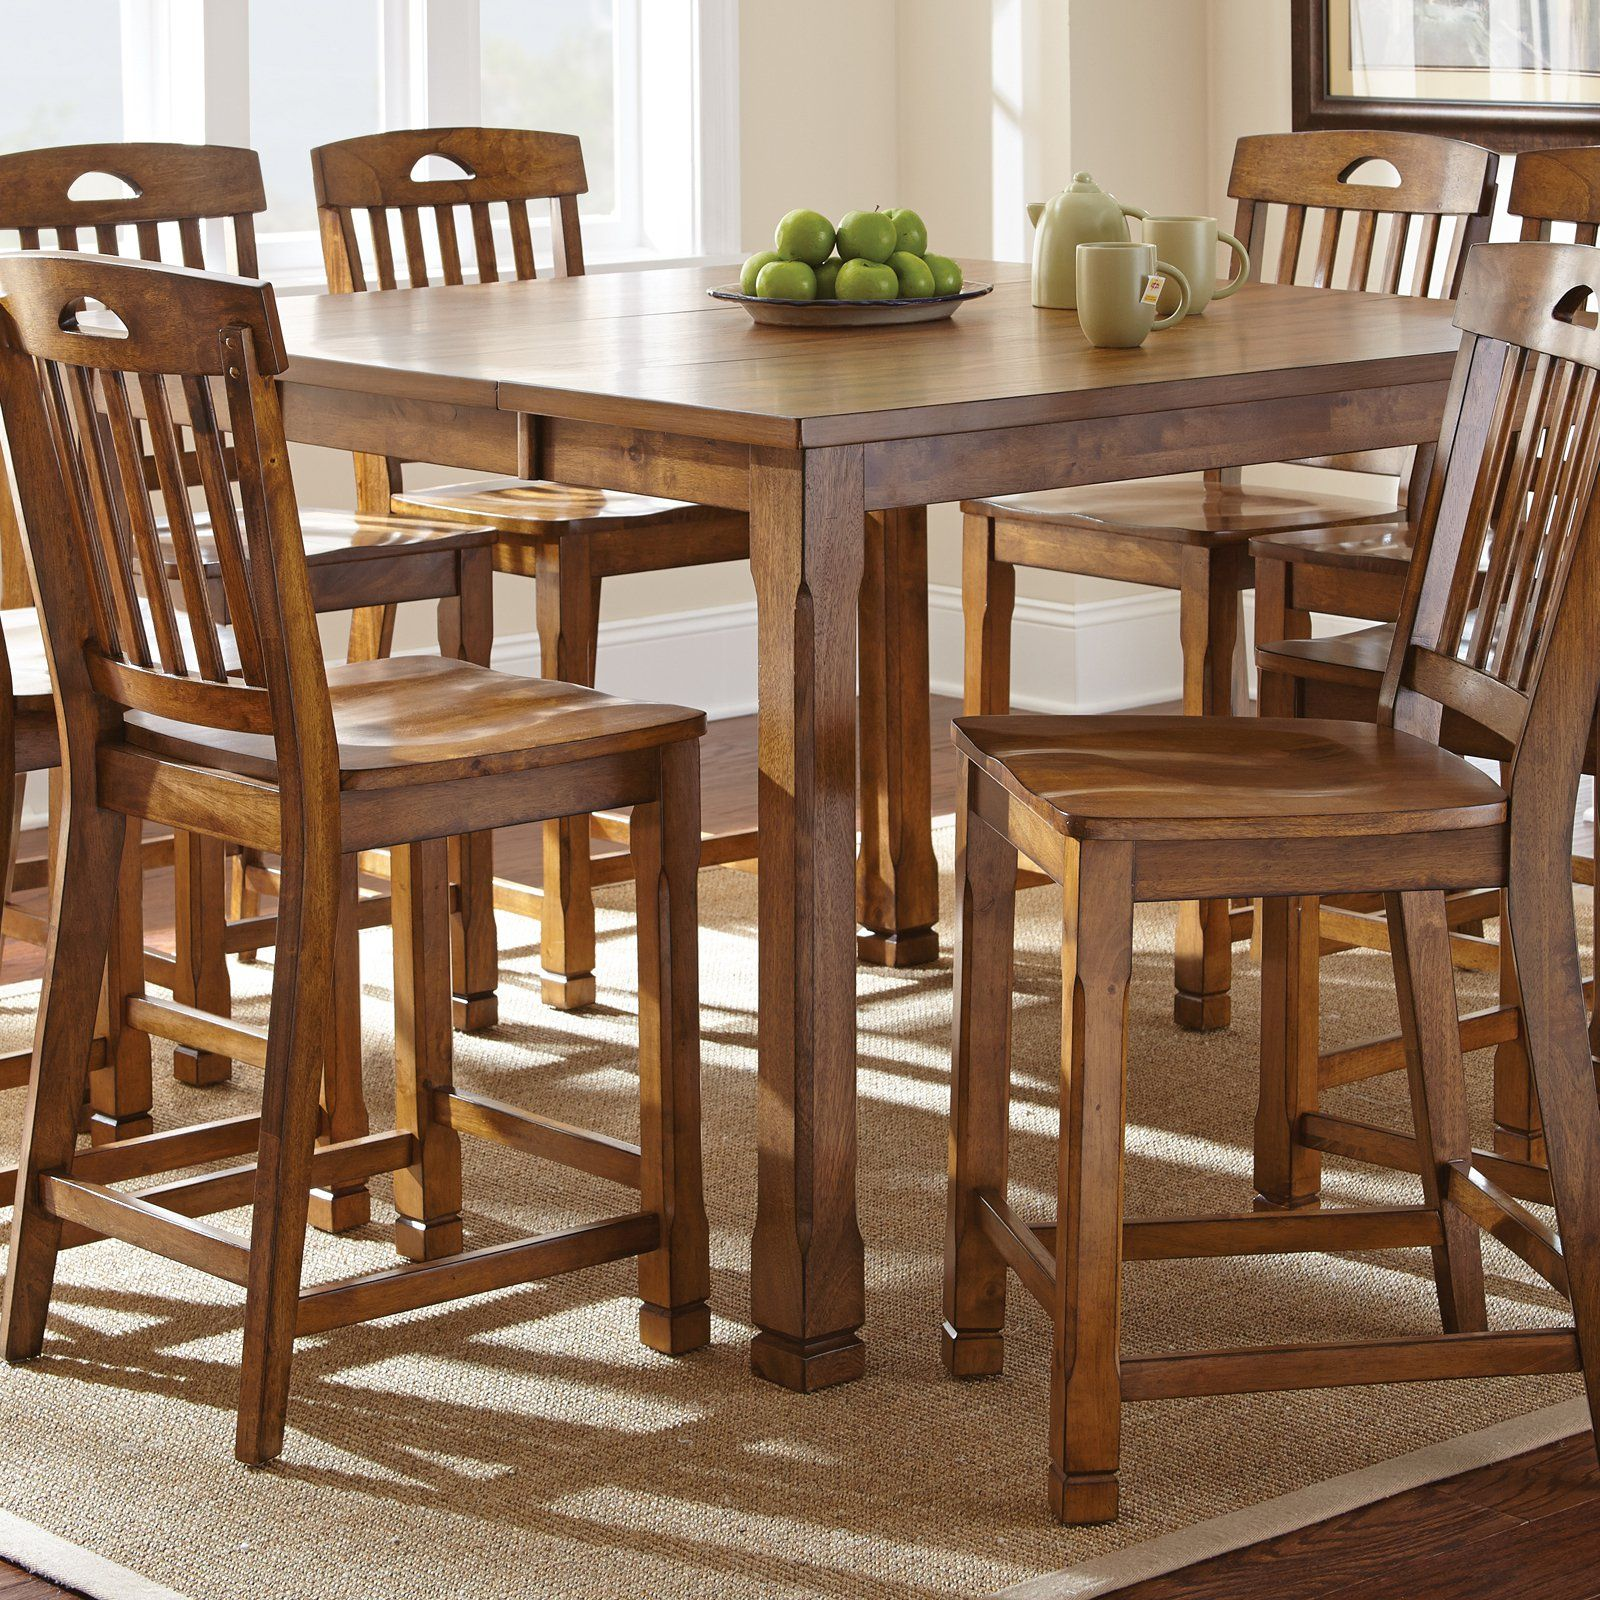 39+ Steve silver counter height dining sets Various Types